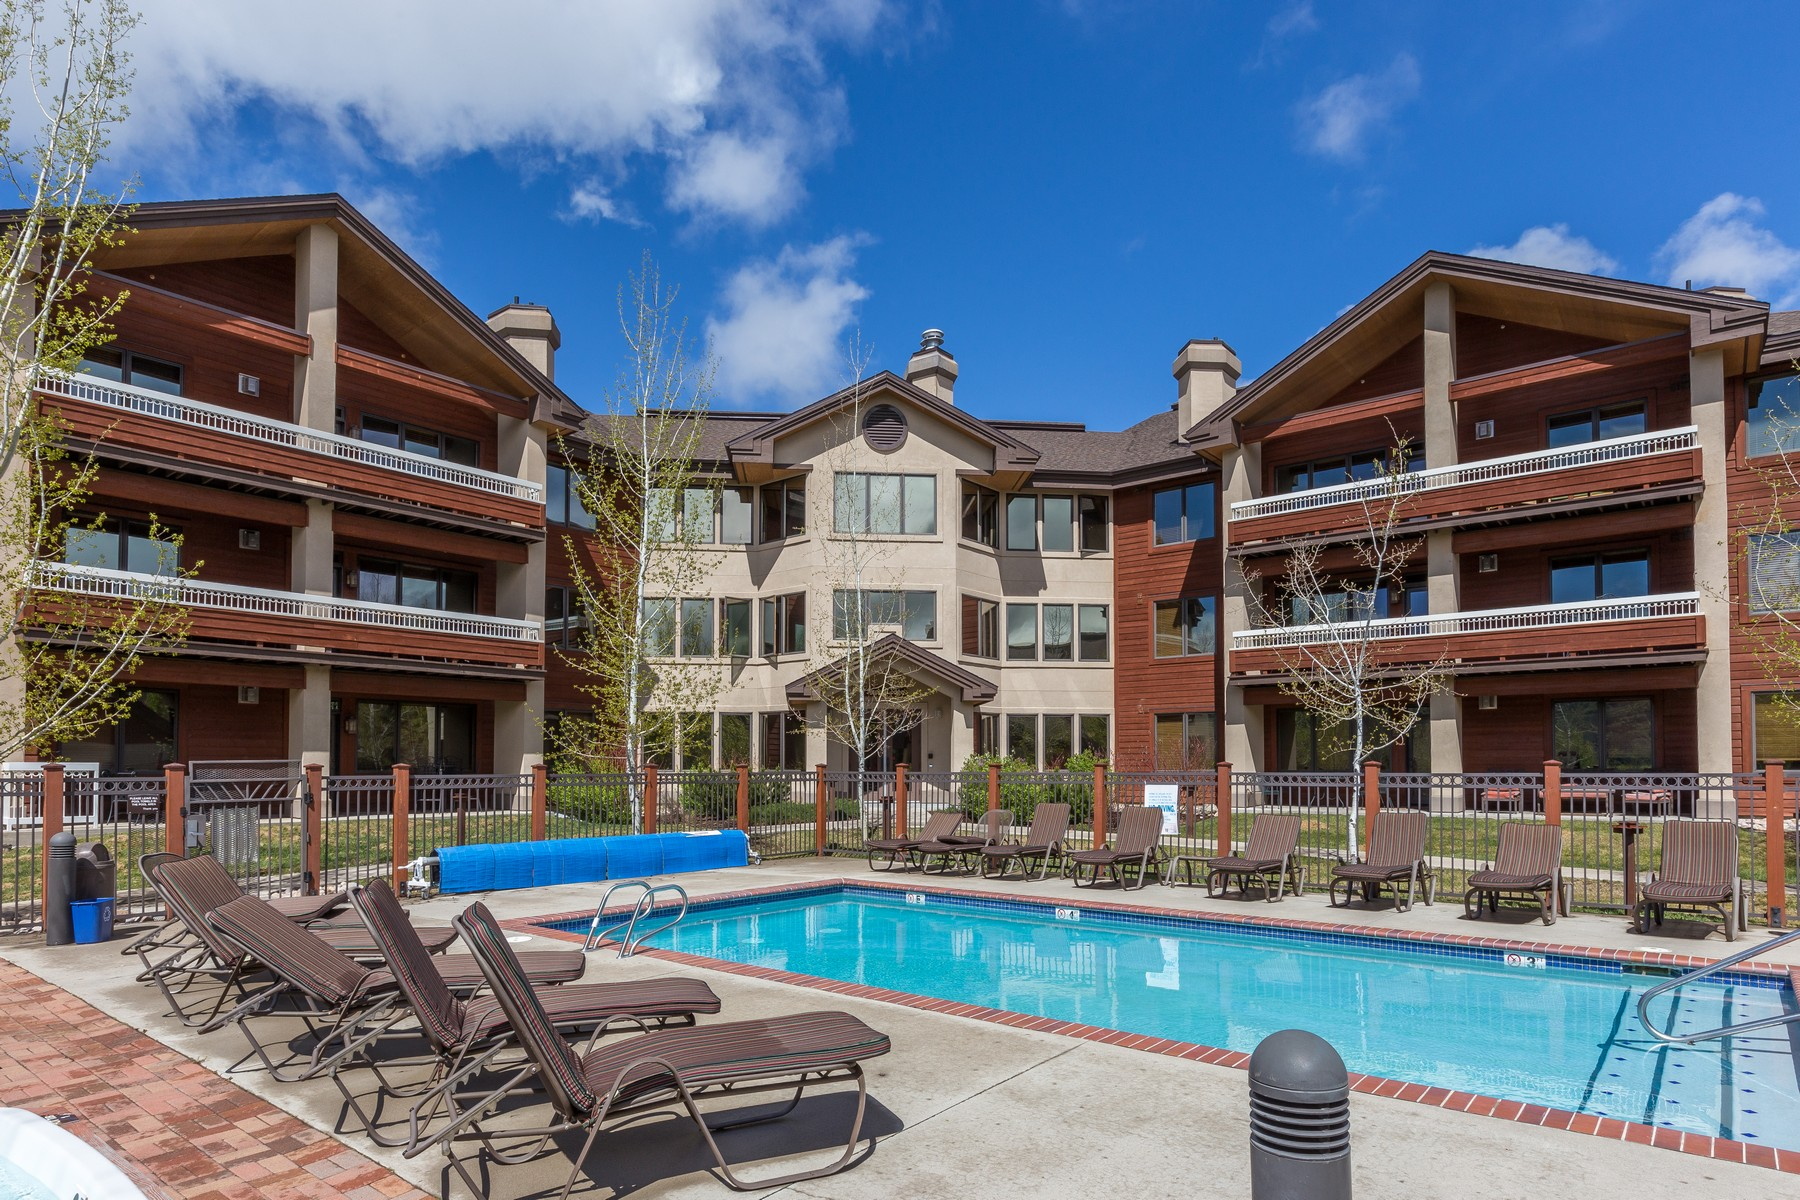 Additional photo for property listing at Aspen Lodge at Trappeur's Crossing Resort 1875 Medicine Springs Dr 4203 斯廷博特斯普林斯, 科罗拉多州 80487 美国